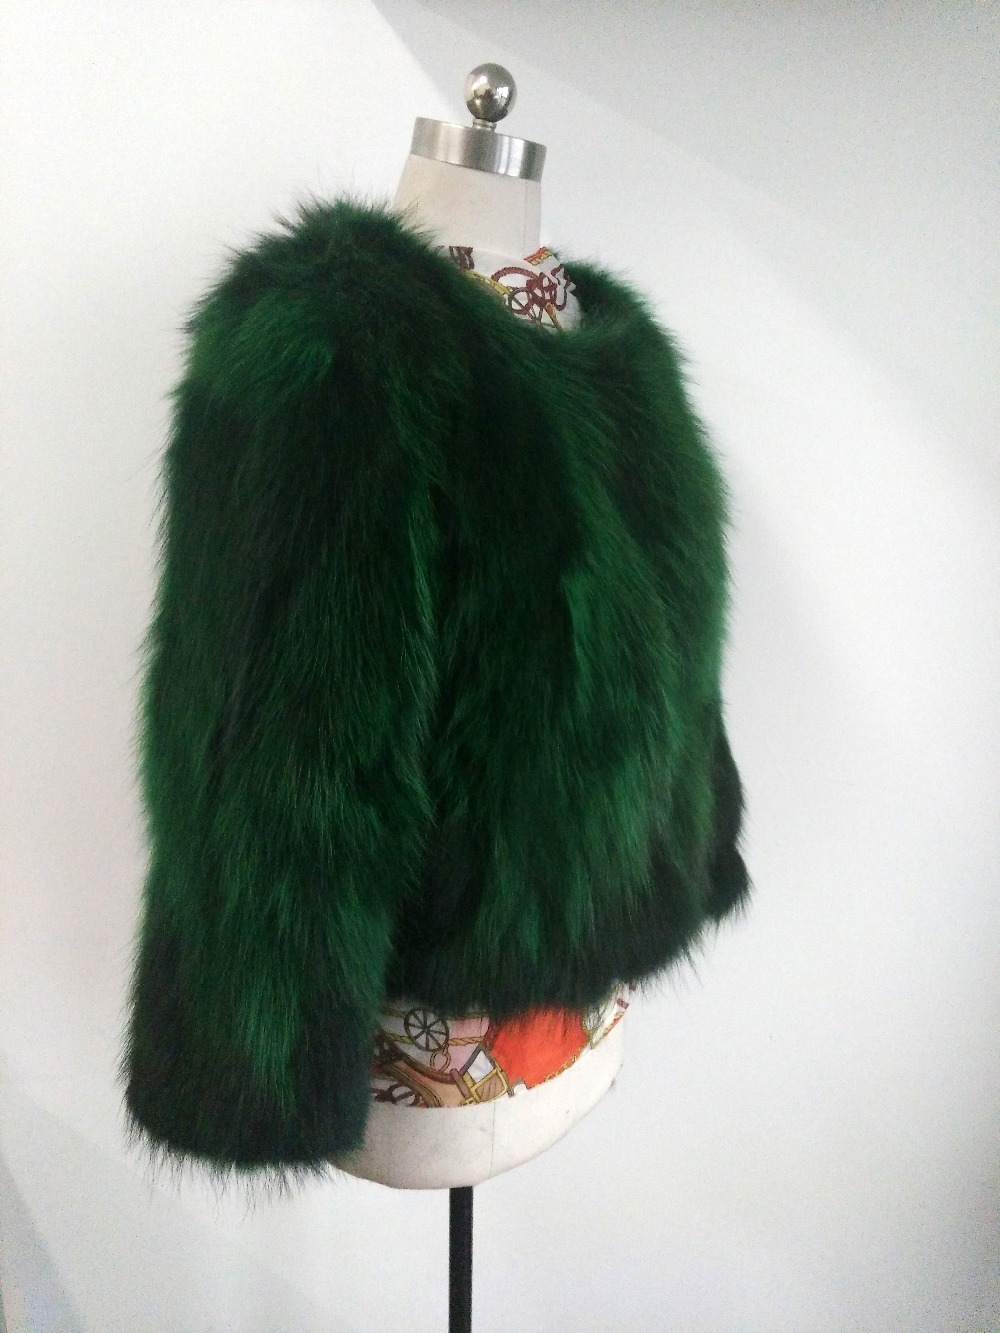 2019 New Fashion Real Raccoon Fur Jacket Women Natural True Fur Coat Factory Outlet Wholesale Fur Waistcoat DSR18